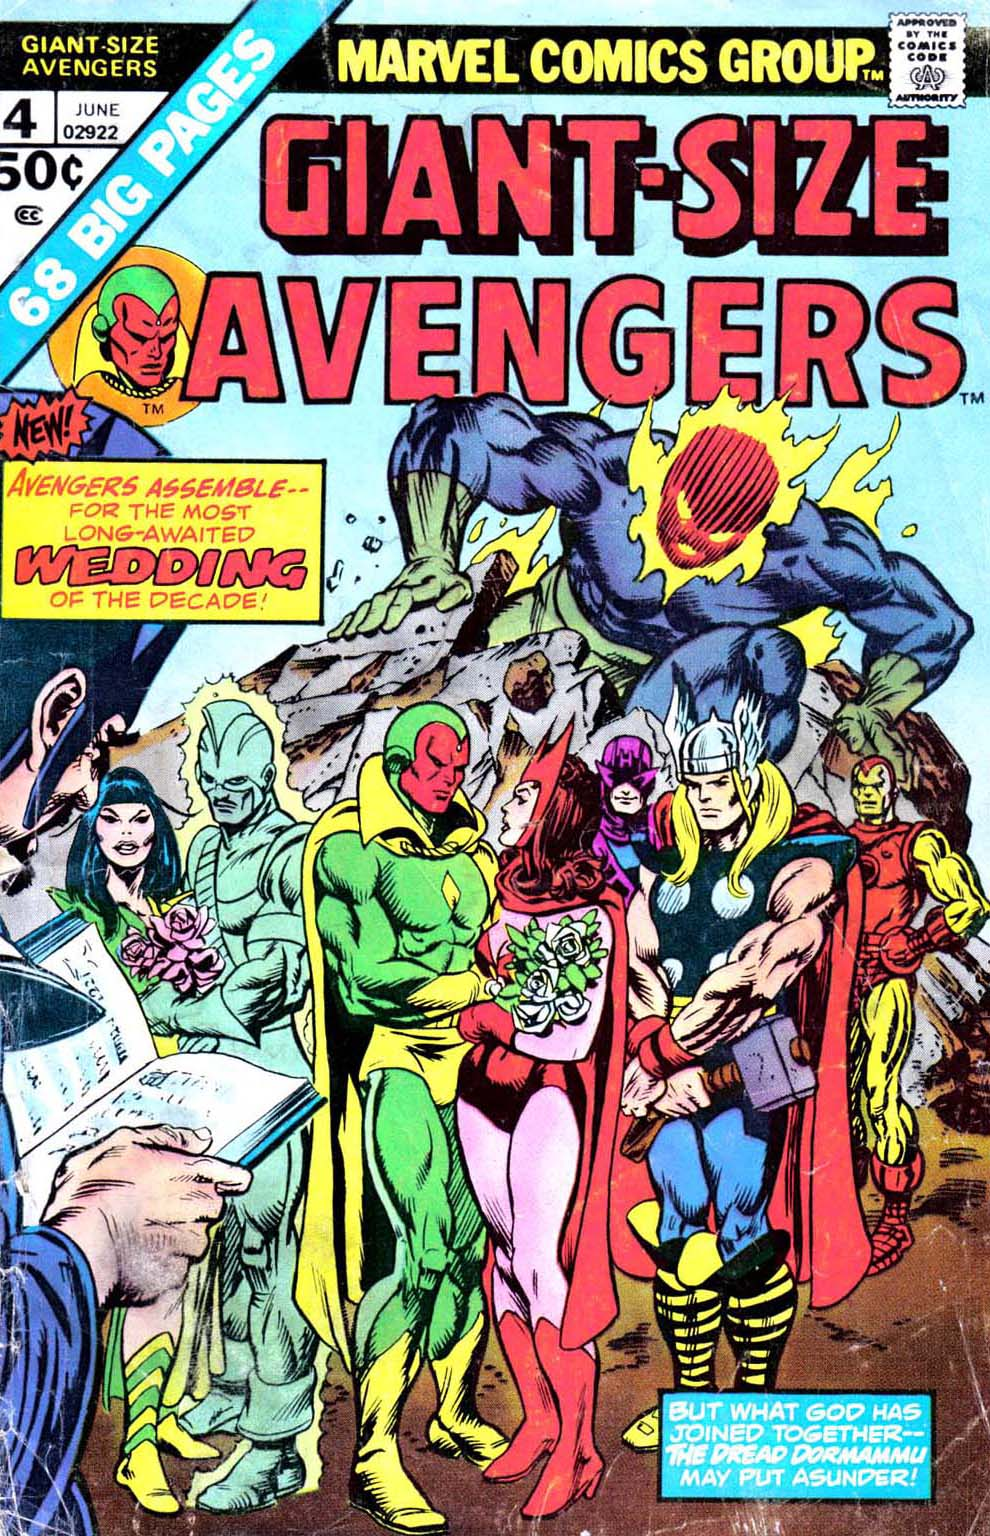 Giant-Size Avengers (1974) issue 4 - Page 1